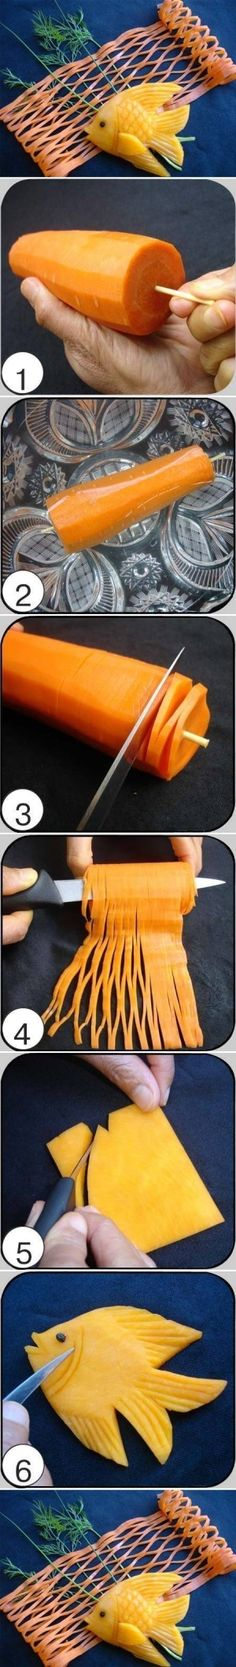 DIY Wortel Vis en Net DIY Wortel Vis en Net door diyforever